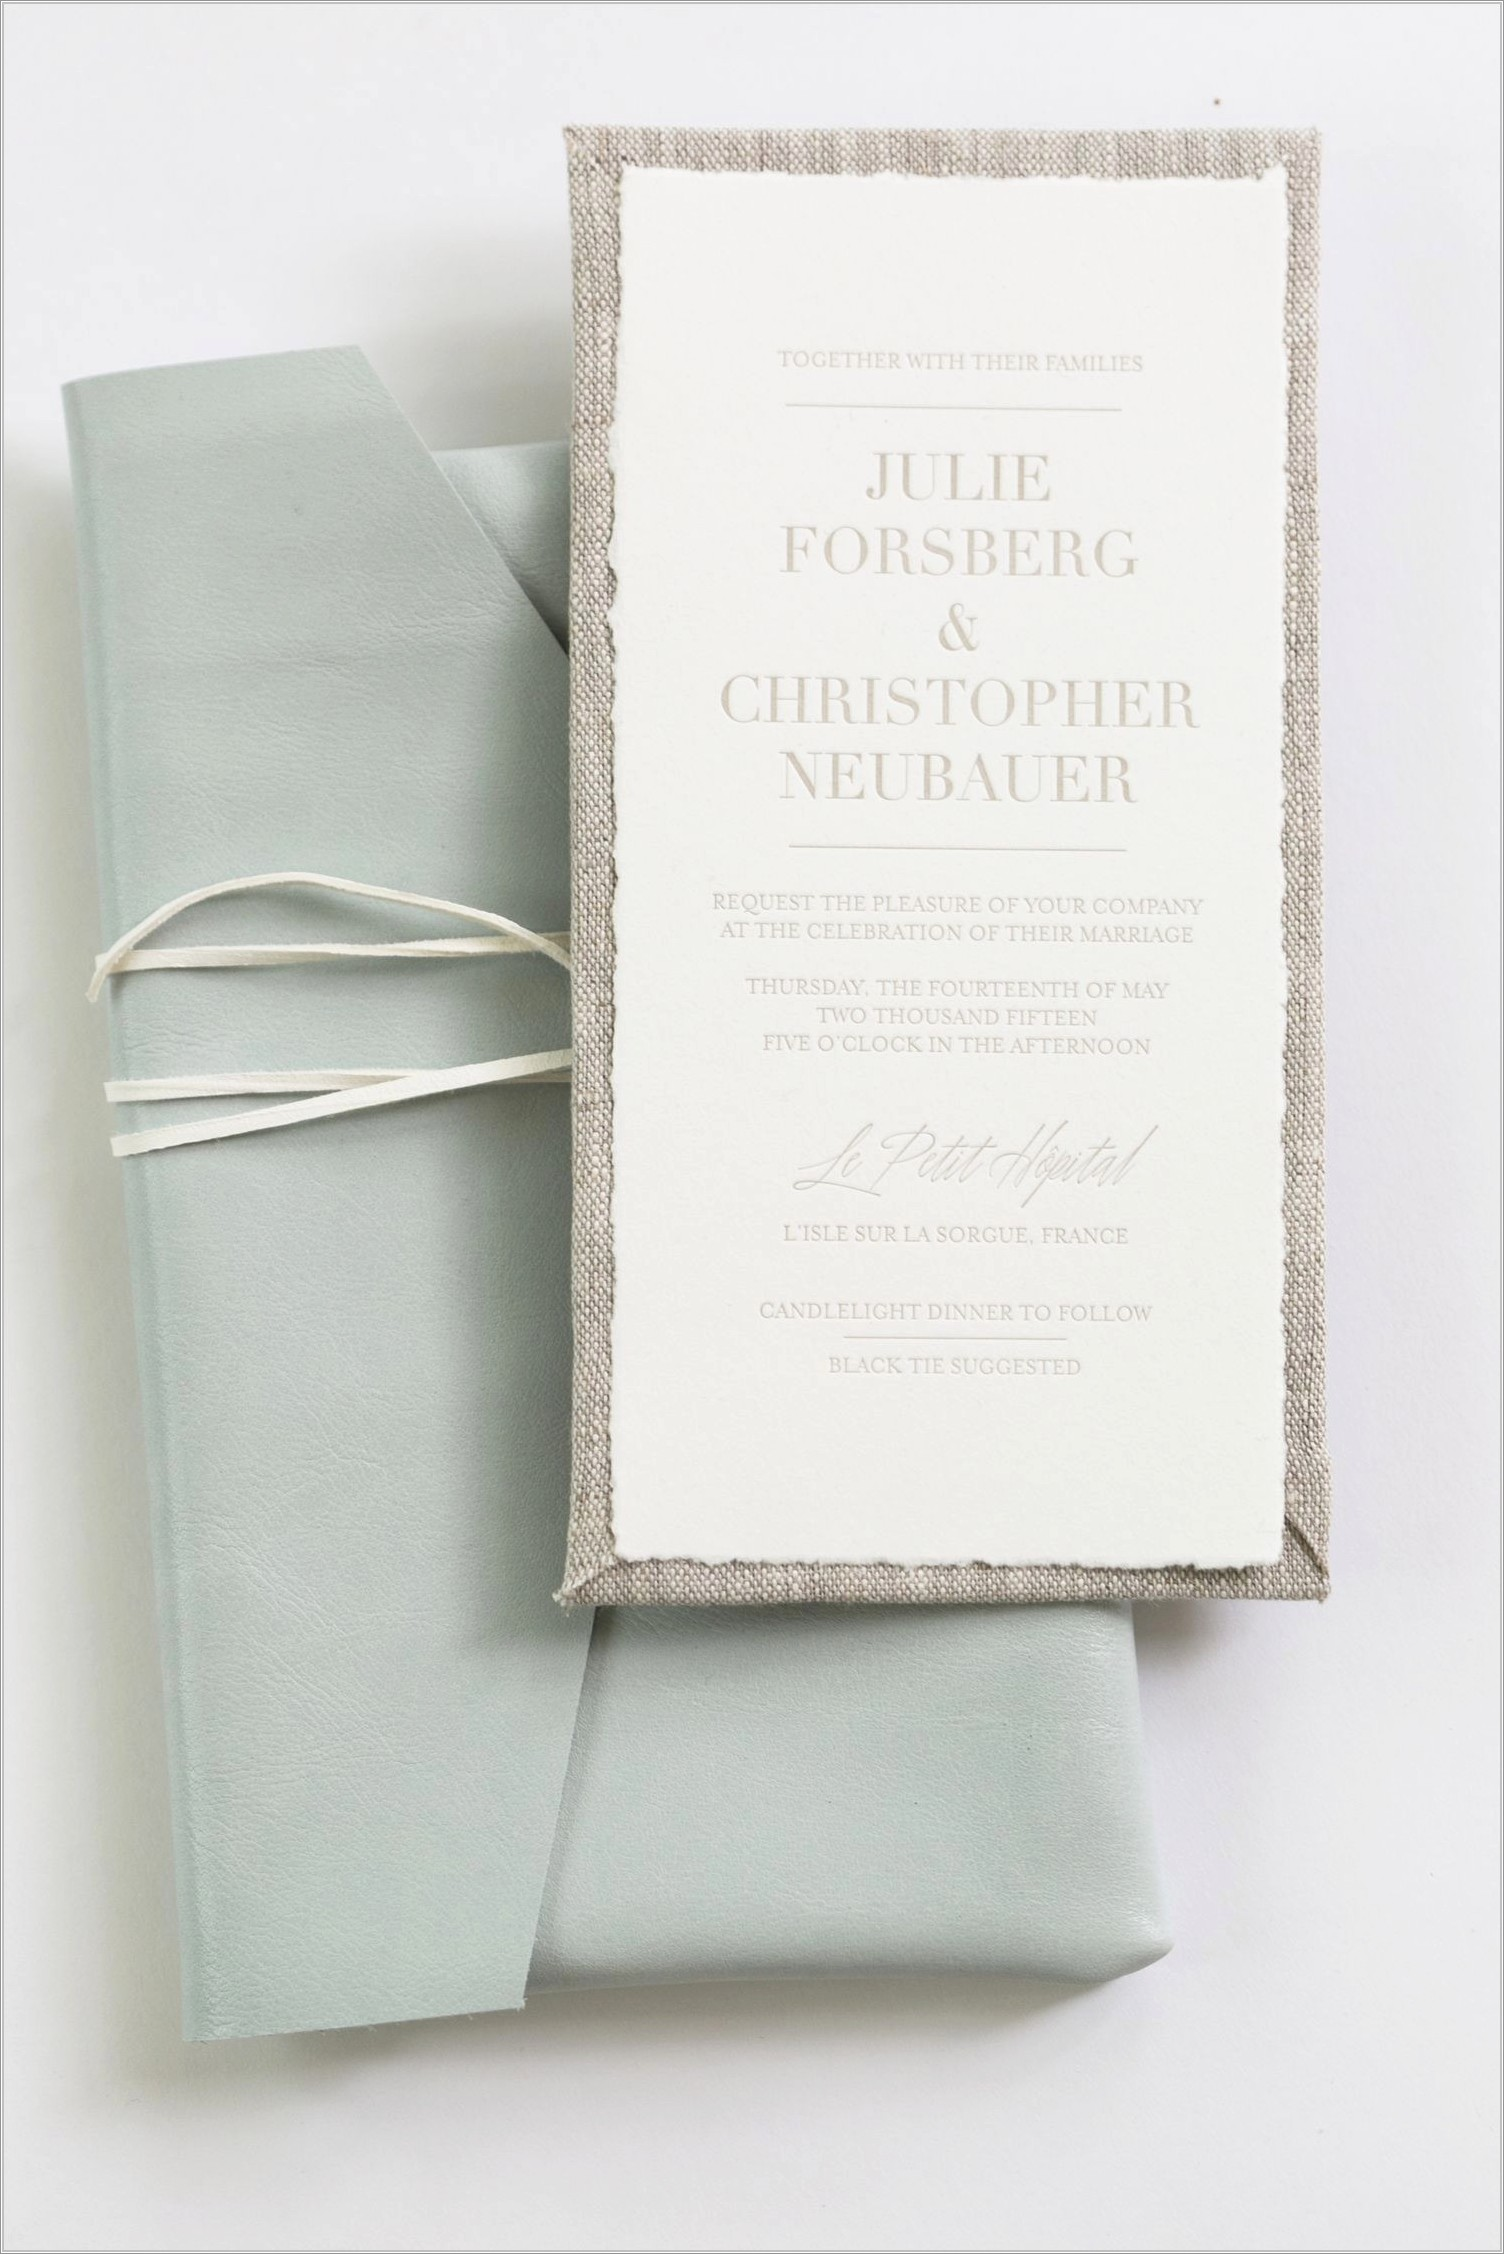 Vellum Jackets For Invitations Uk